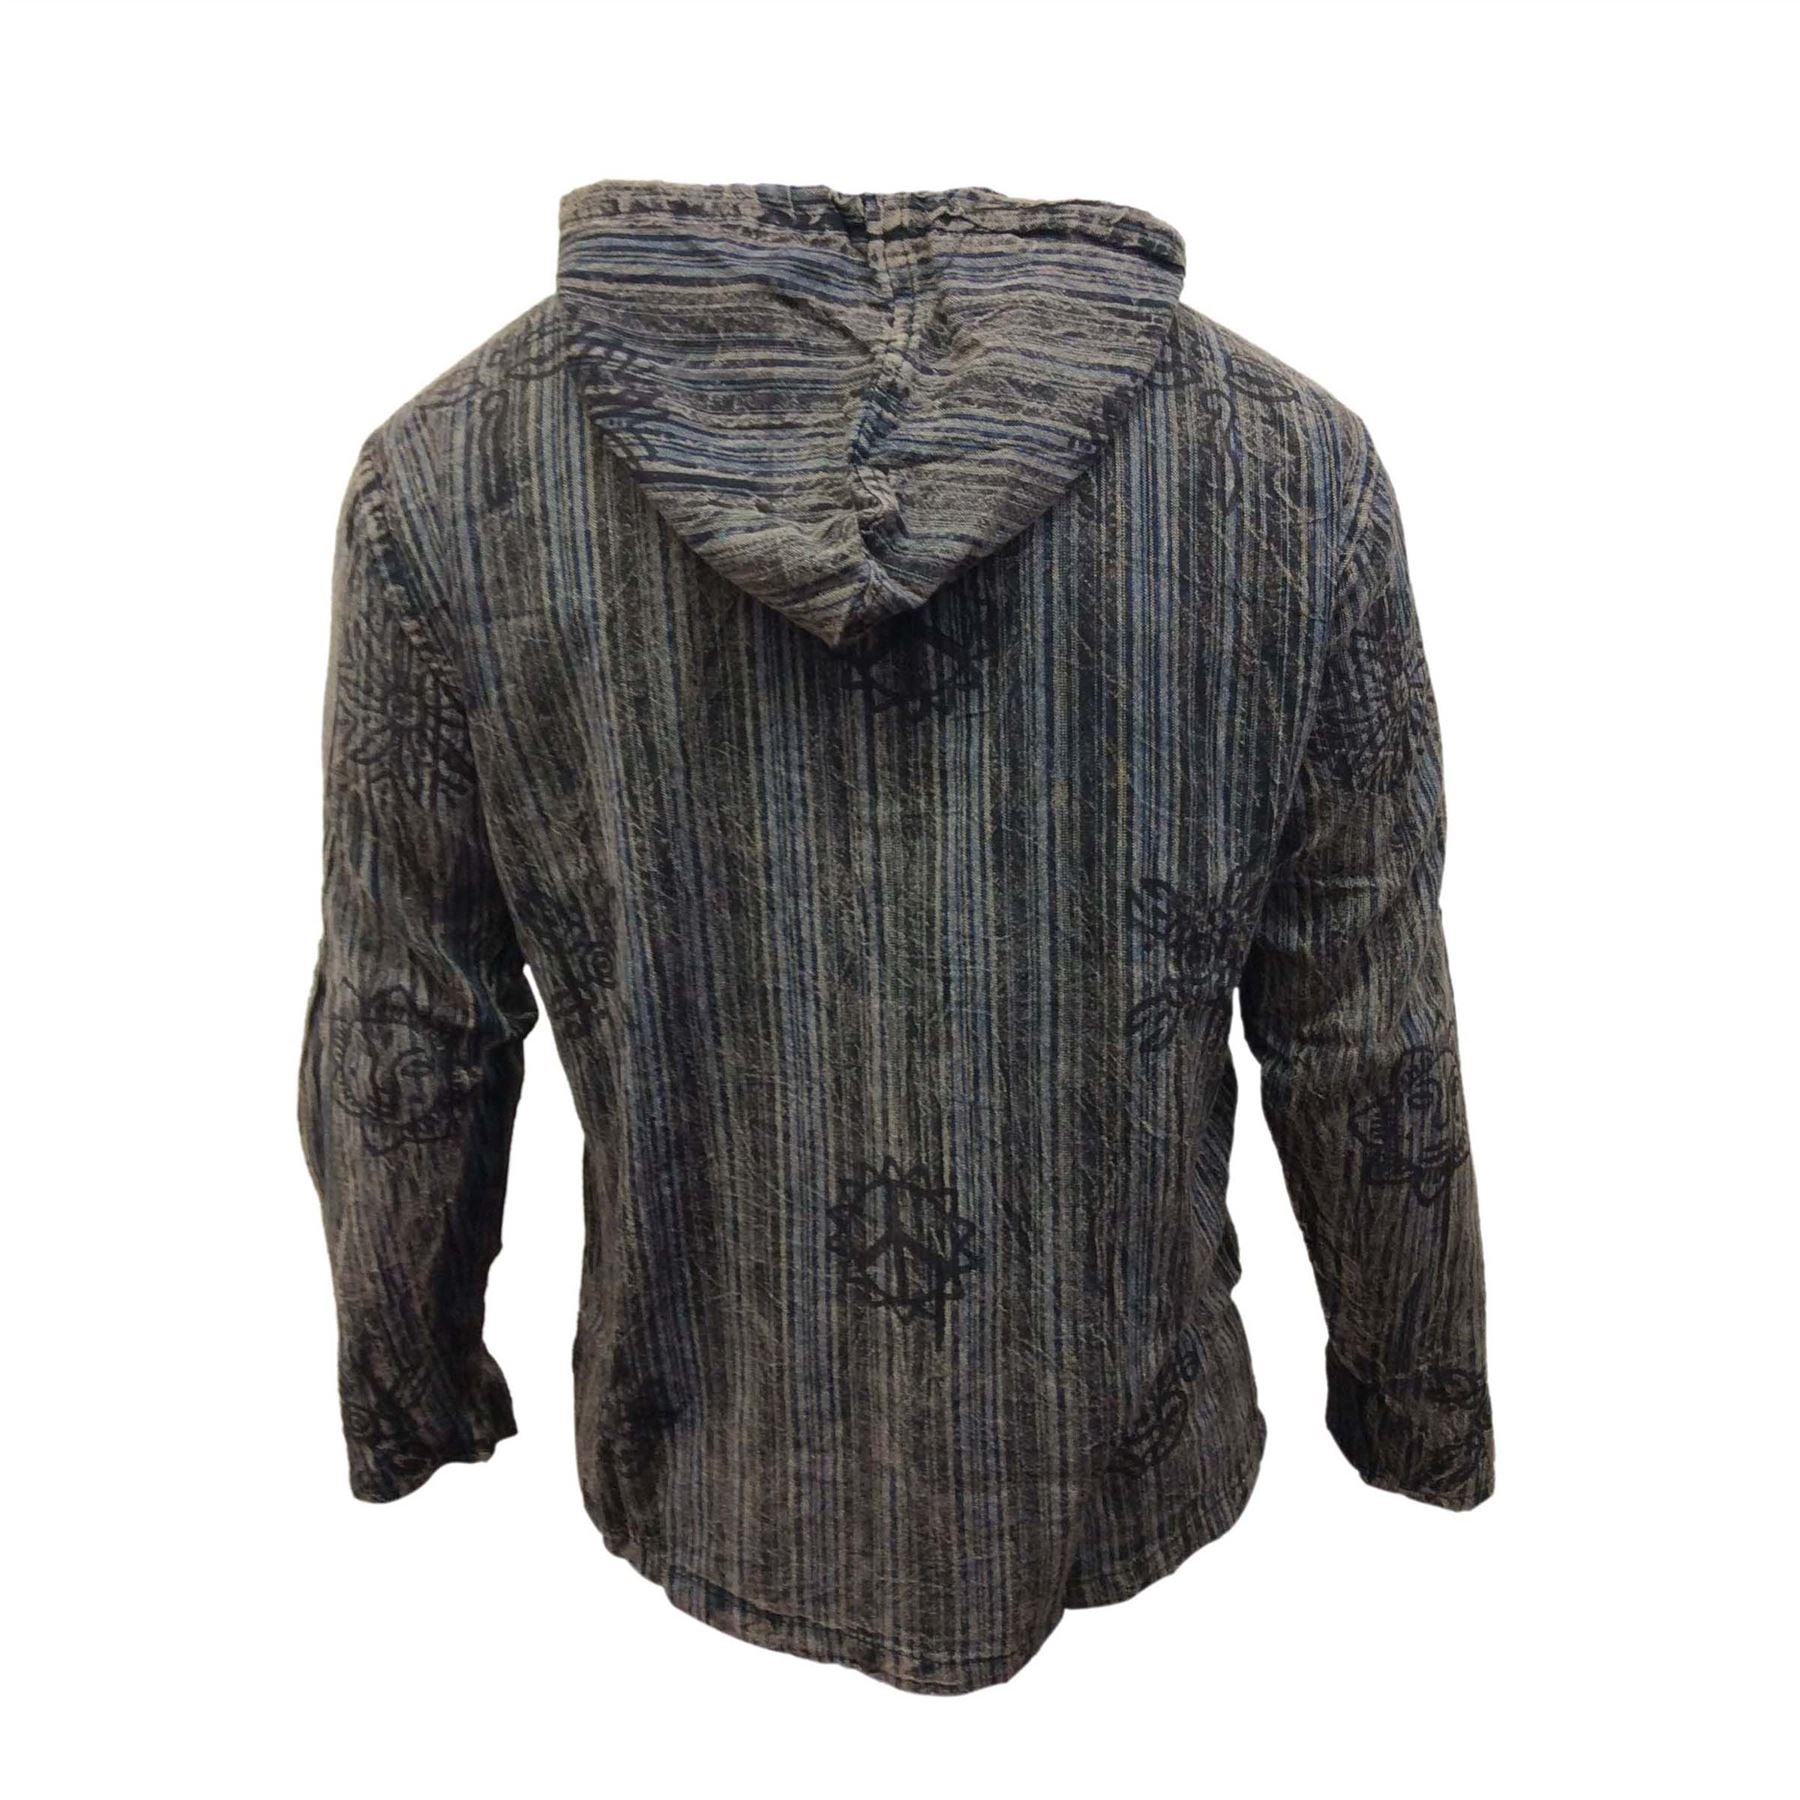 Mens-Stonewashed-Striped-Hooded-Grandad-Shirt-Long-Sleeve-Casual-Hooded-Top thumbnail 3